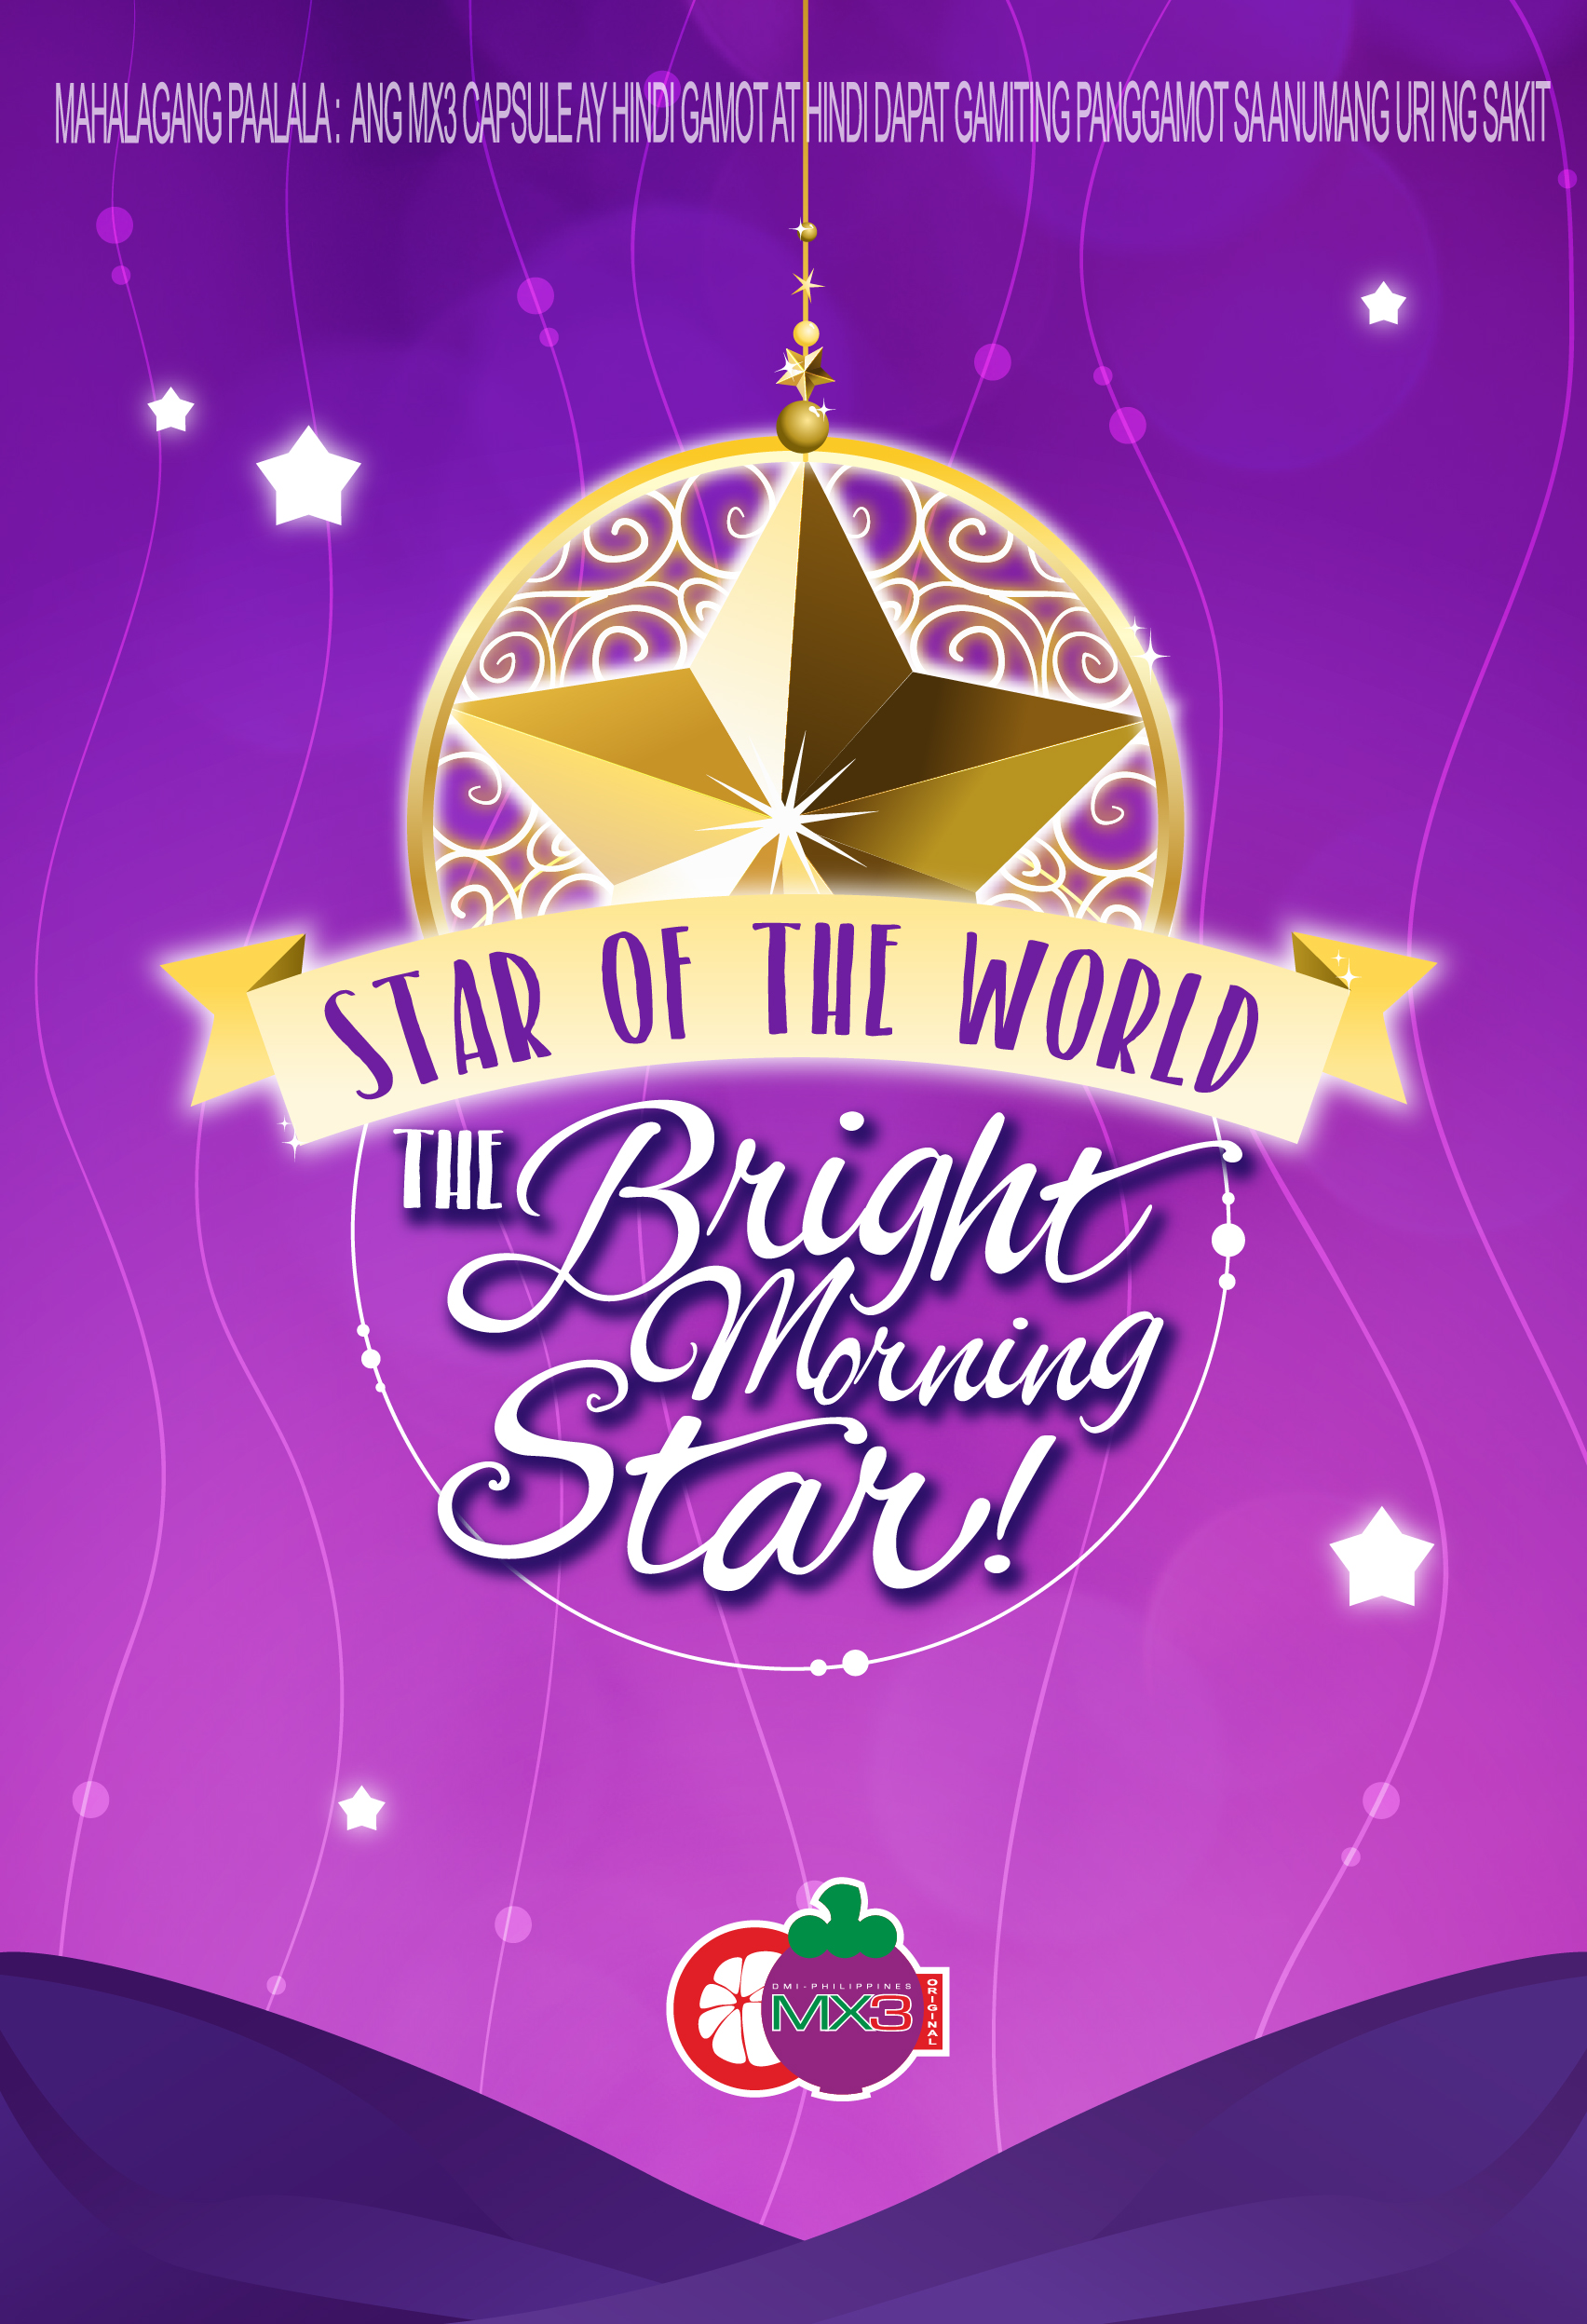 STAR OF THE WORLD, THE BRIGHT MORNING STAR 2018